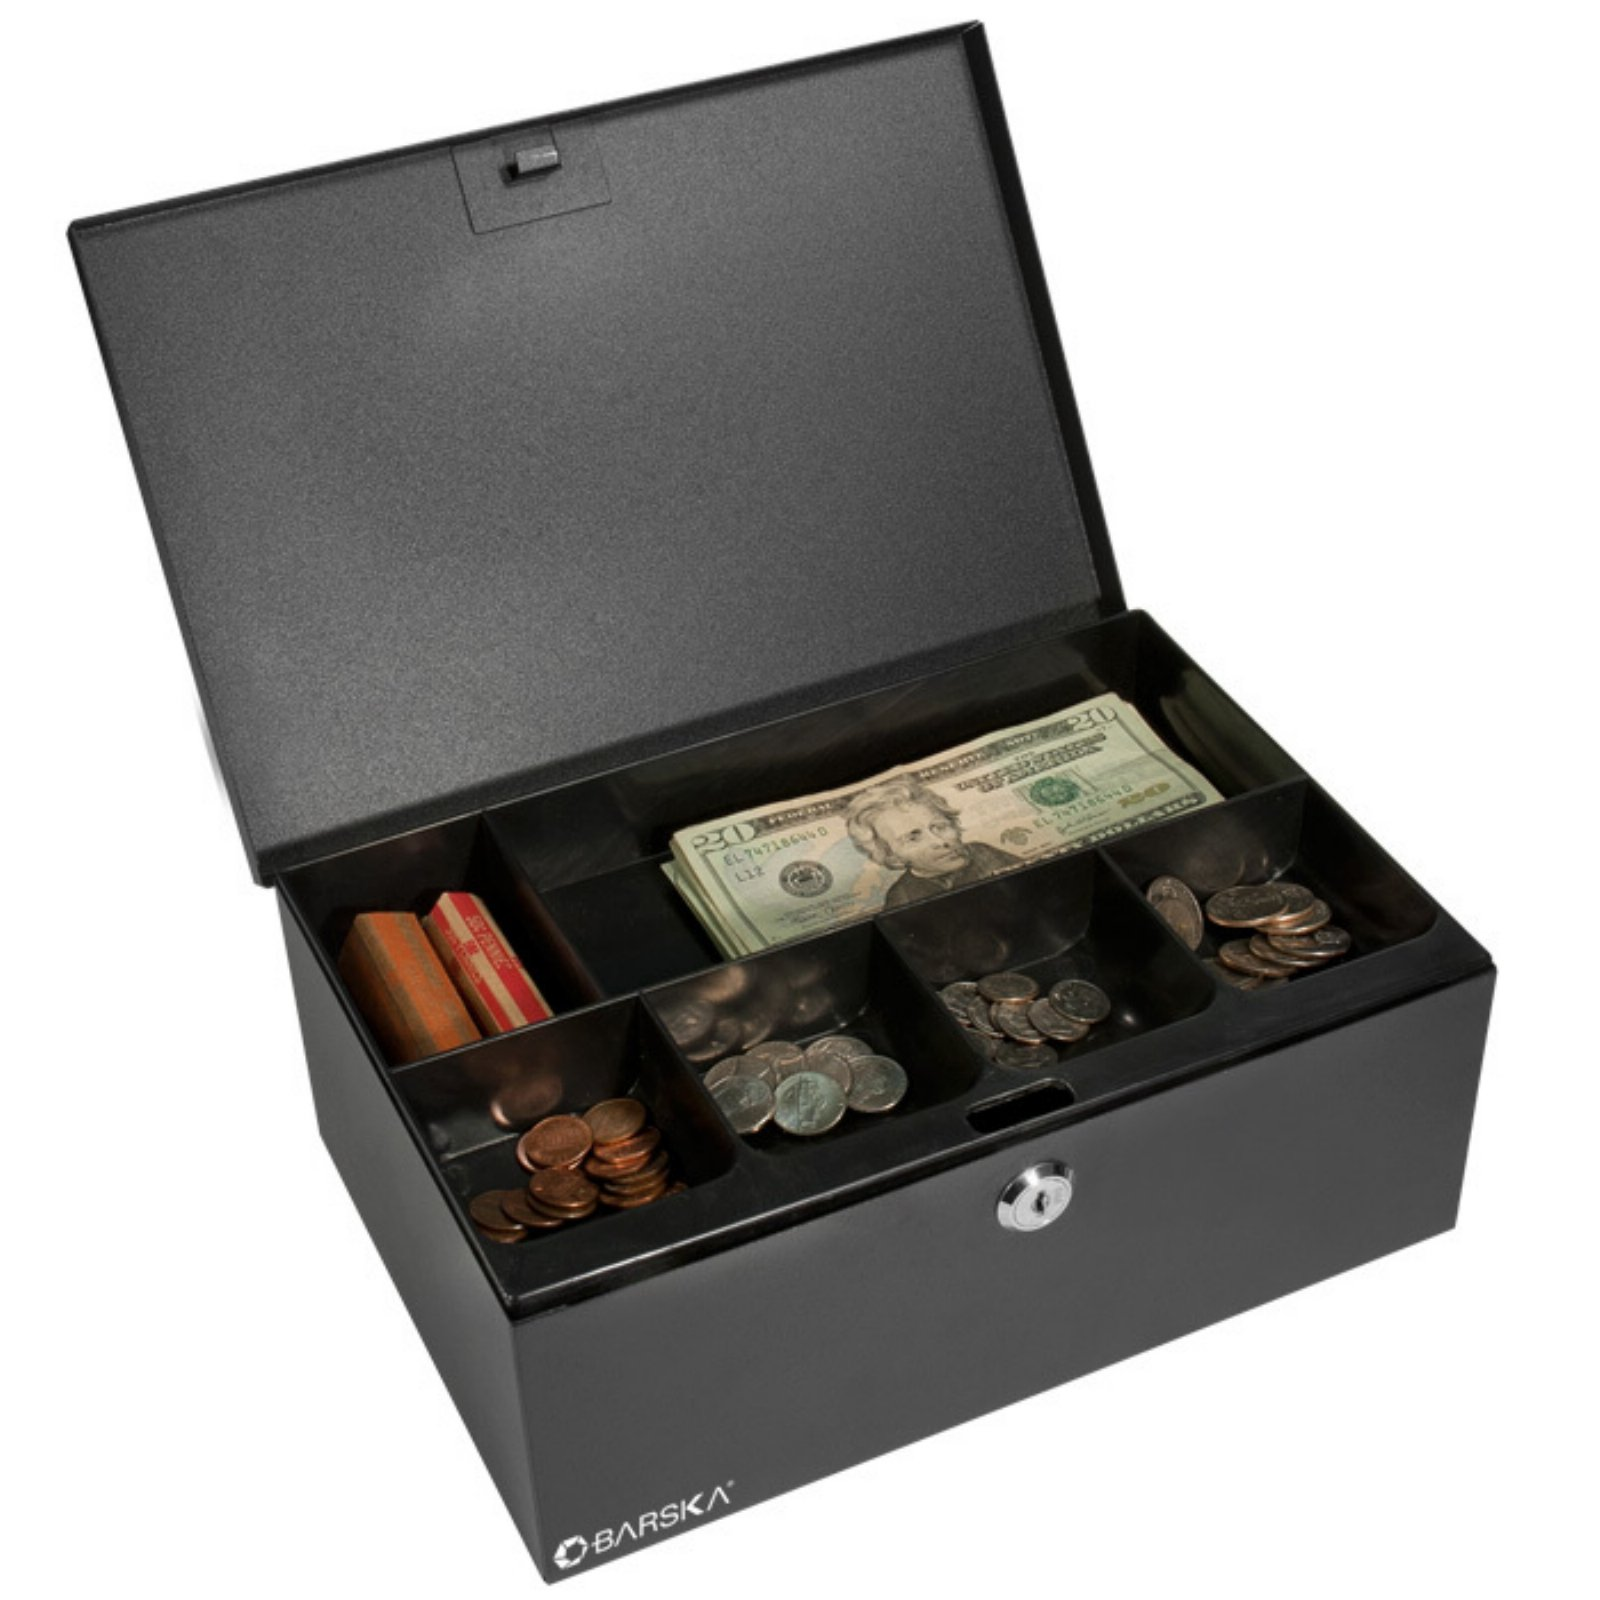 Barska 17 inch Cash Box and Six Compartment Tray with Key Lock by Barska